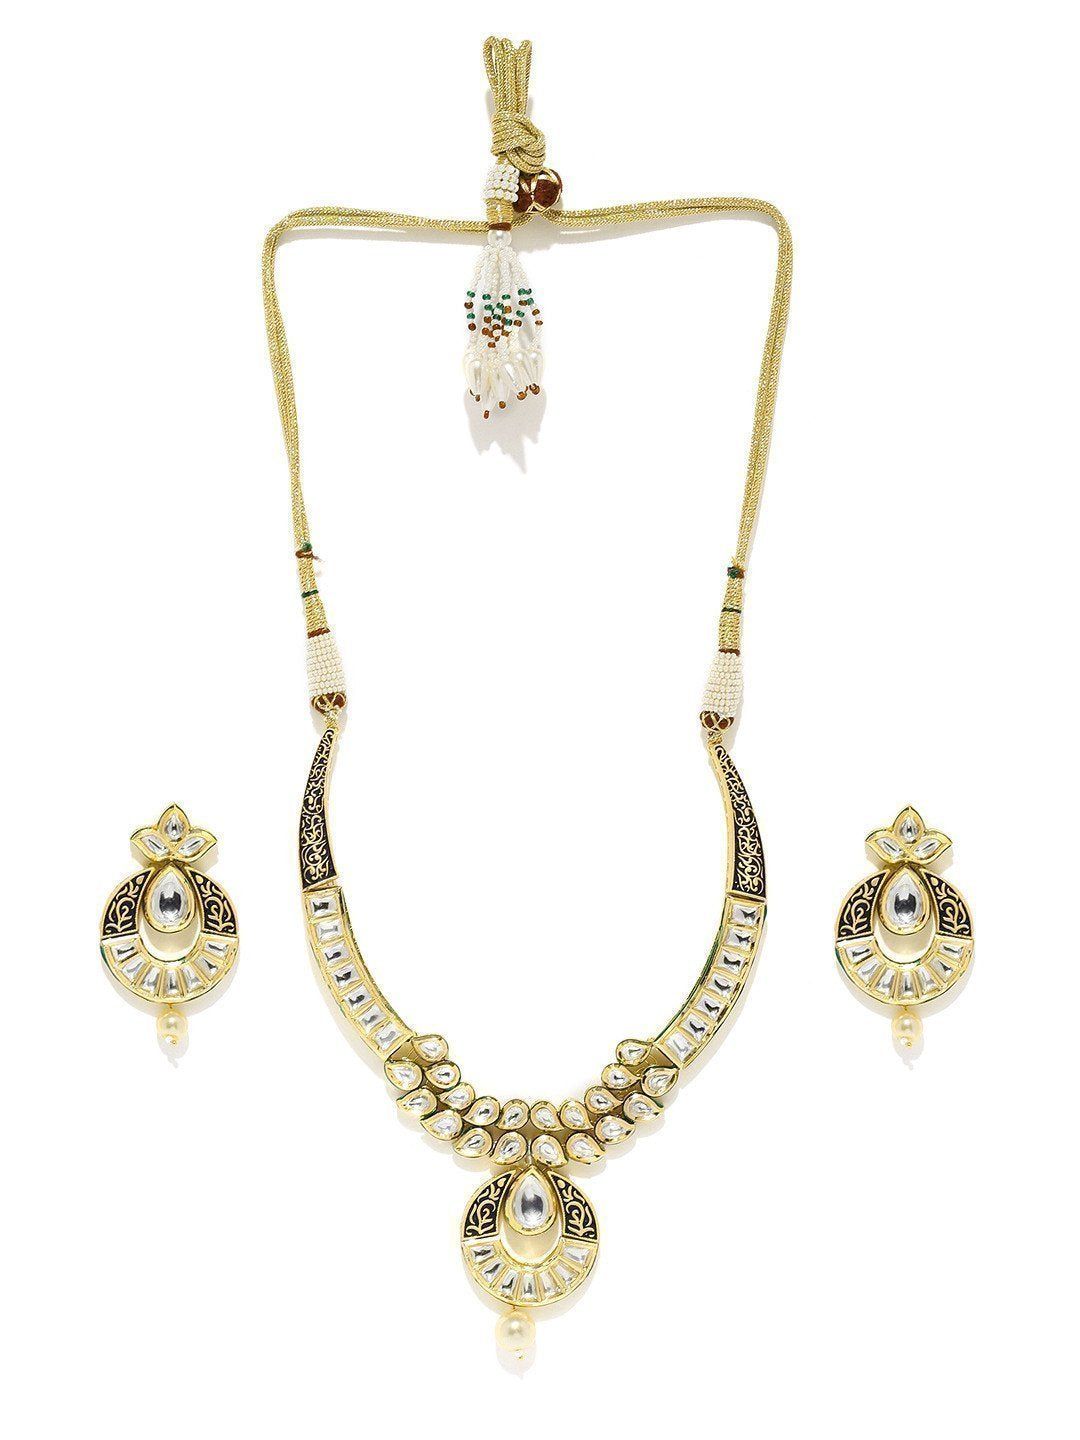 Splendid Kundan With Pearl Drop Necklace Set - Zpfk5852